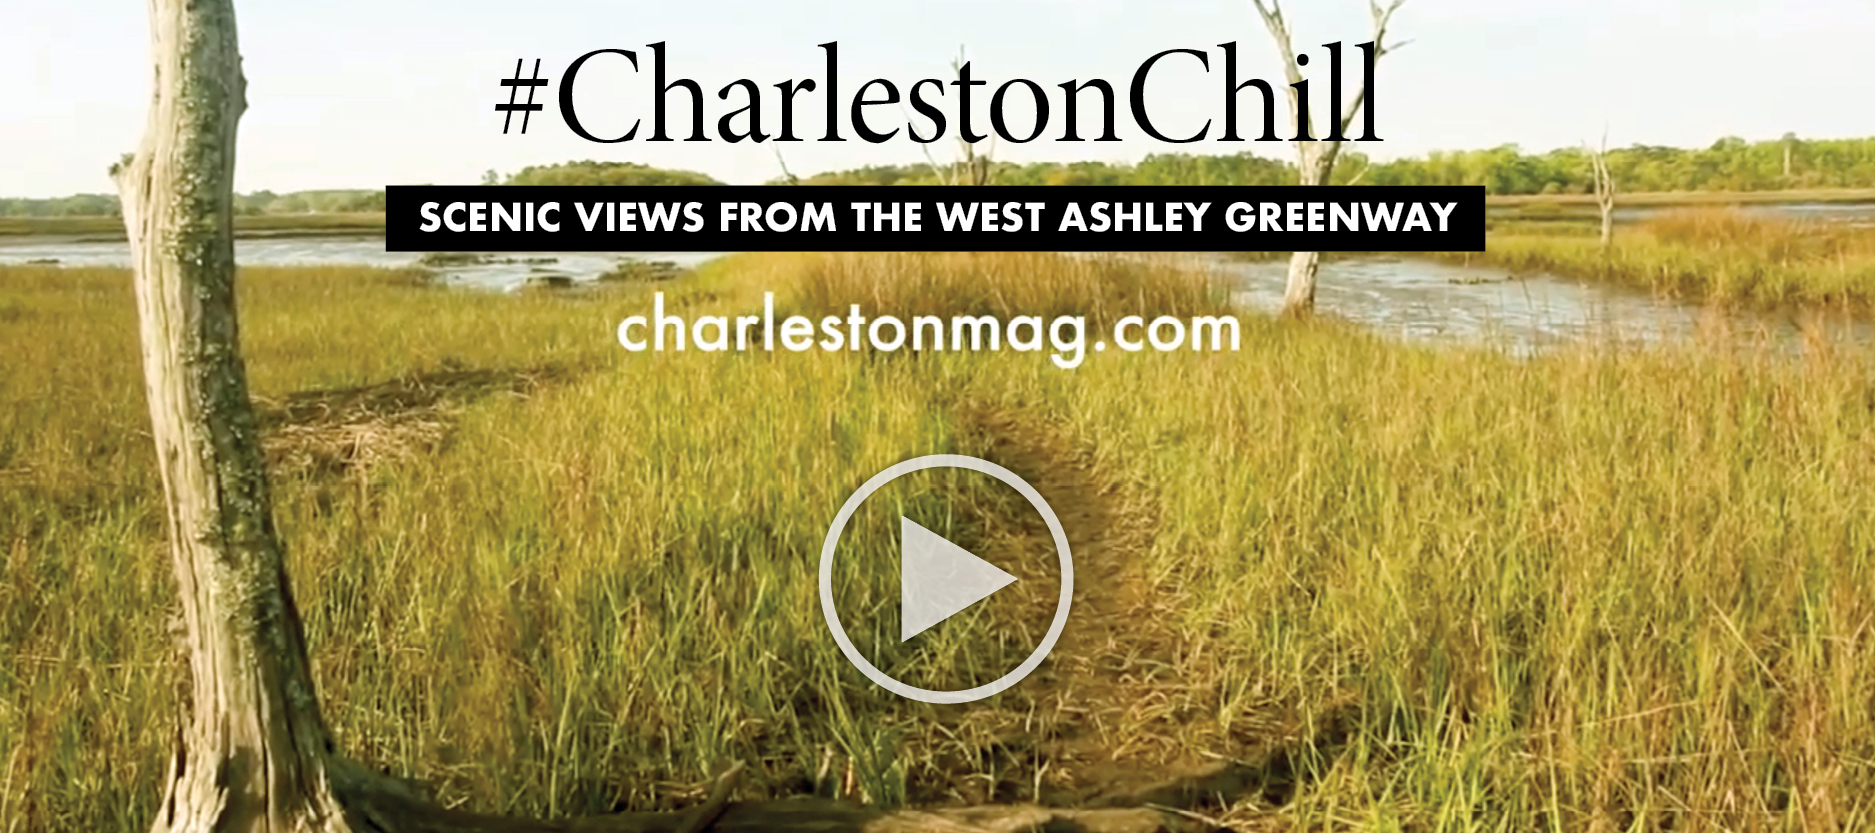 Charleston Chill: on the Greenway